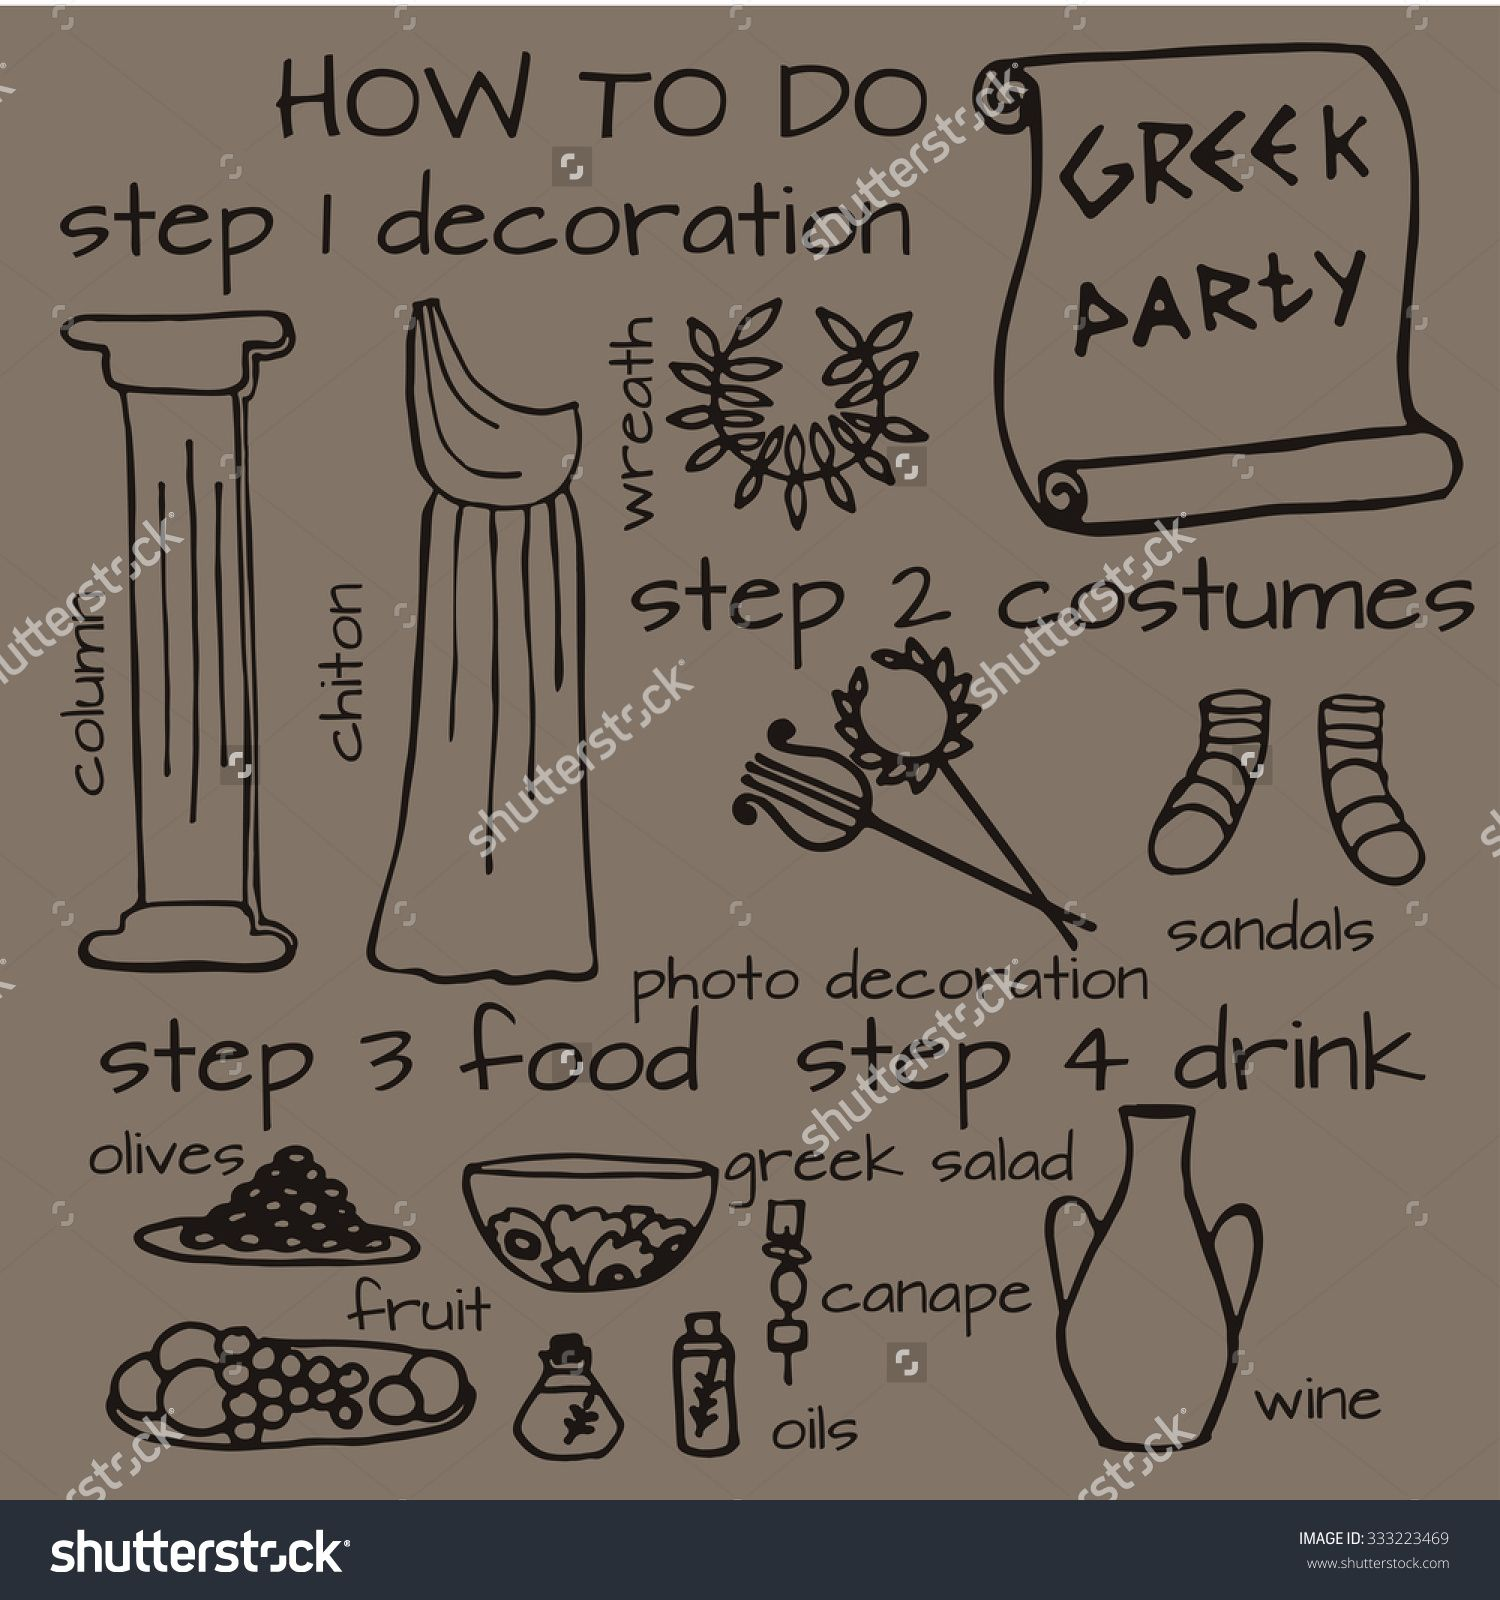 Ancient Greece Party Ideas - Google Search